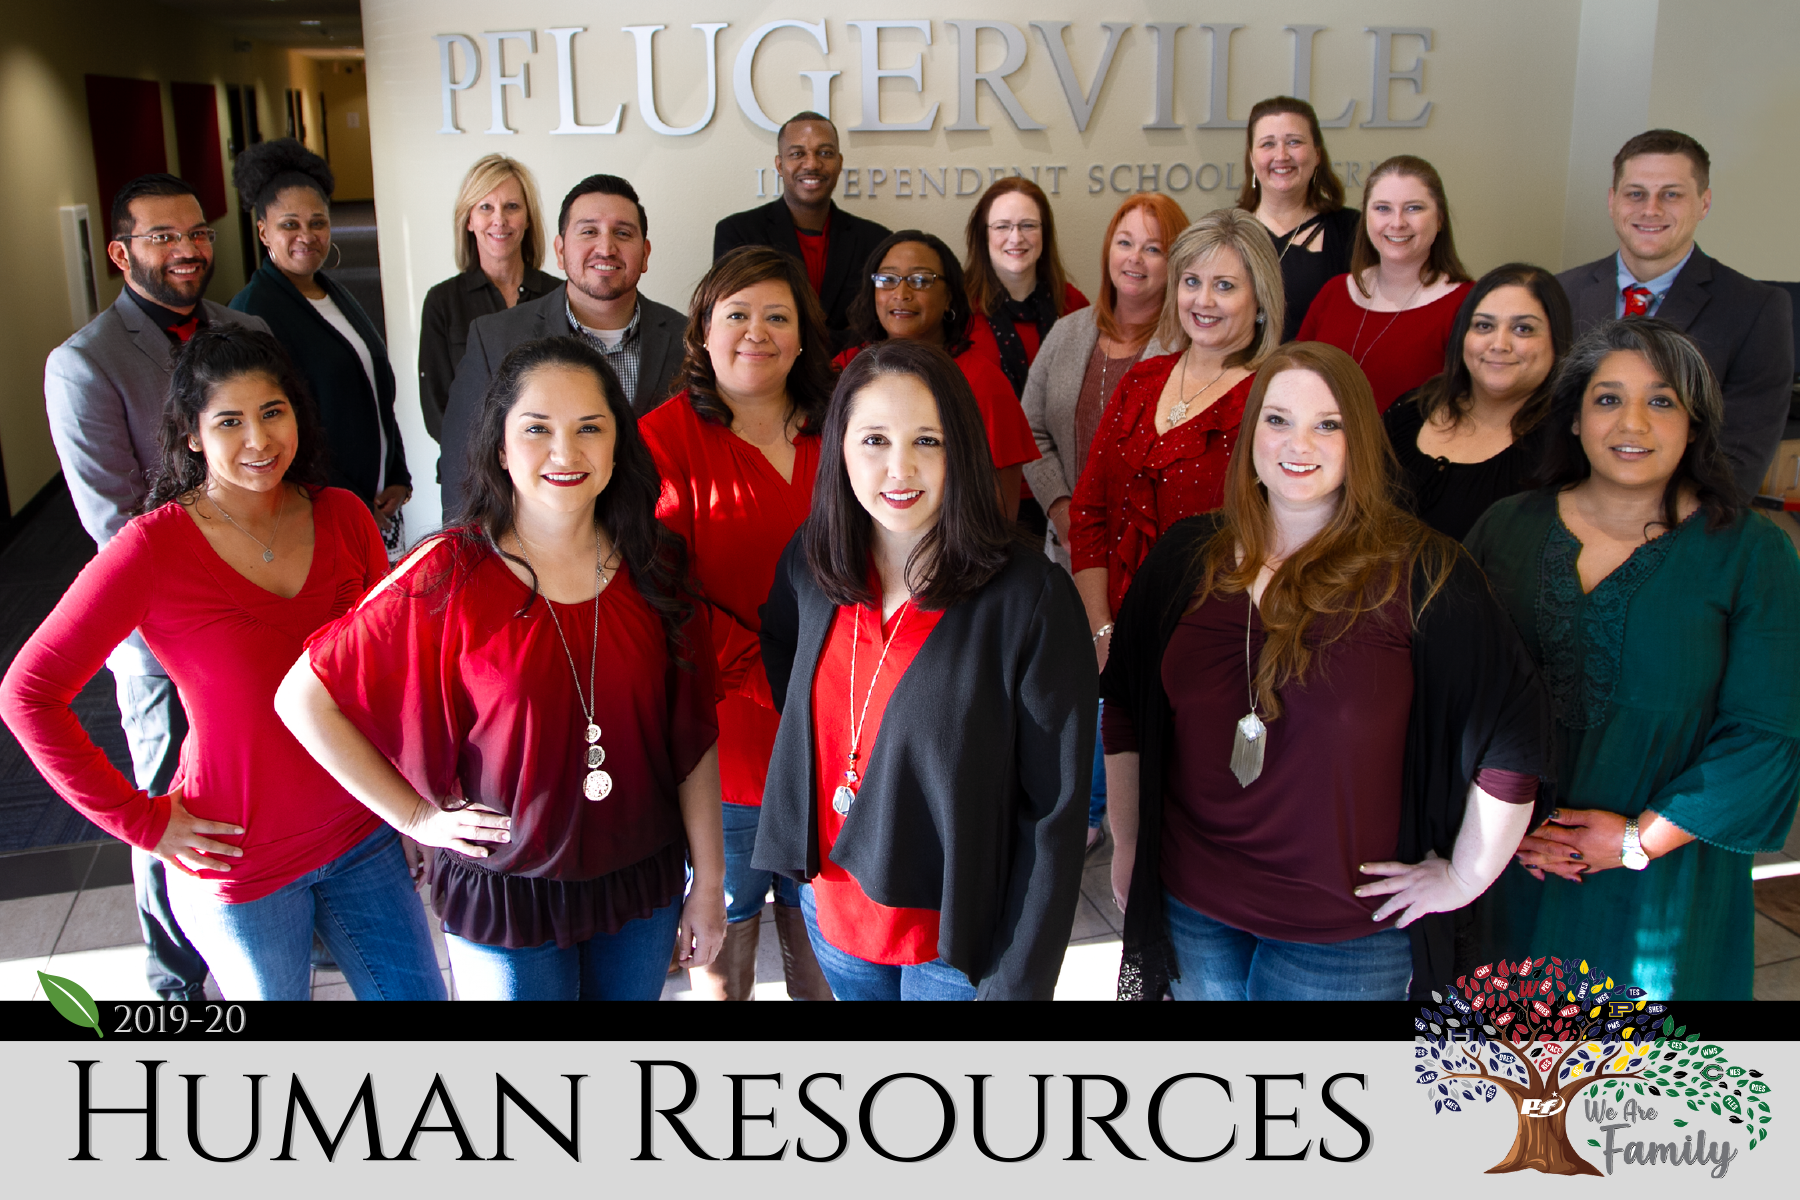 Human Resources 2019-20